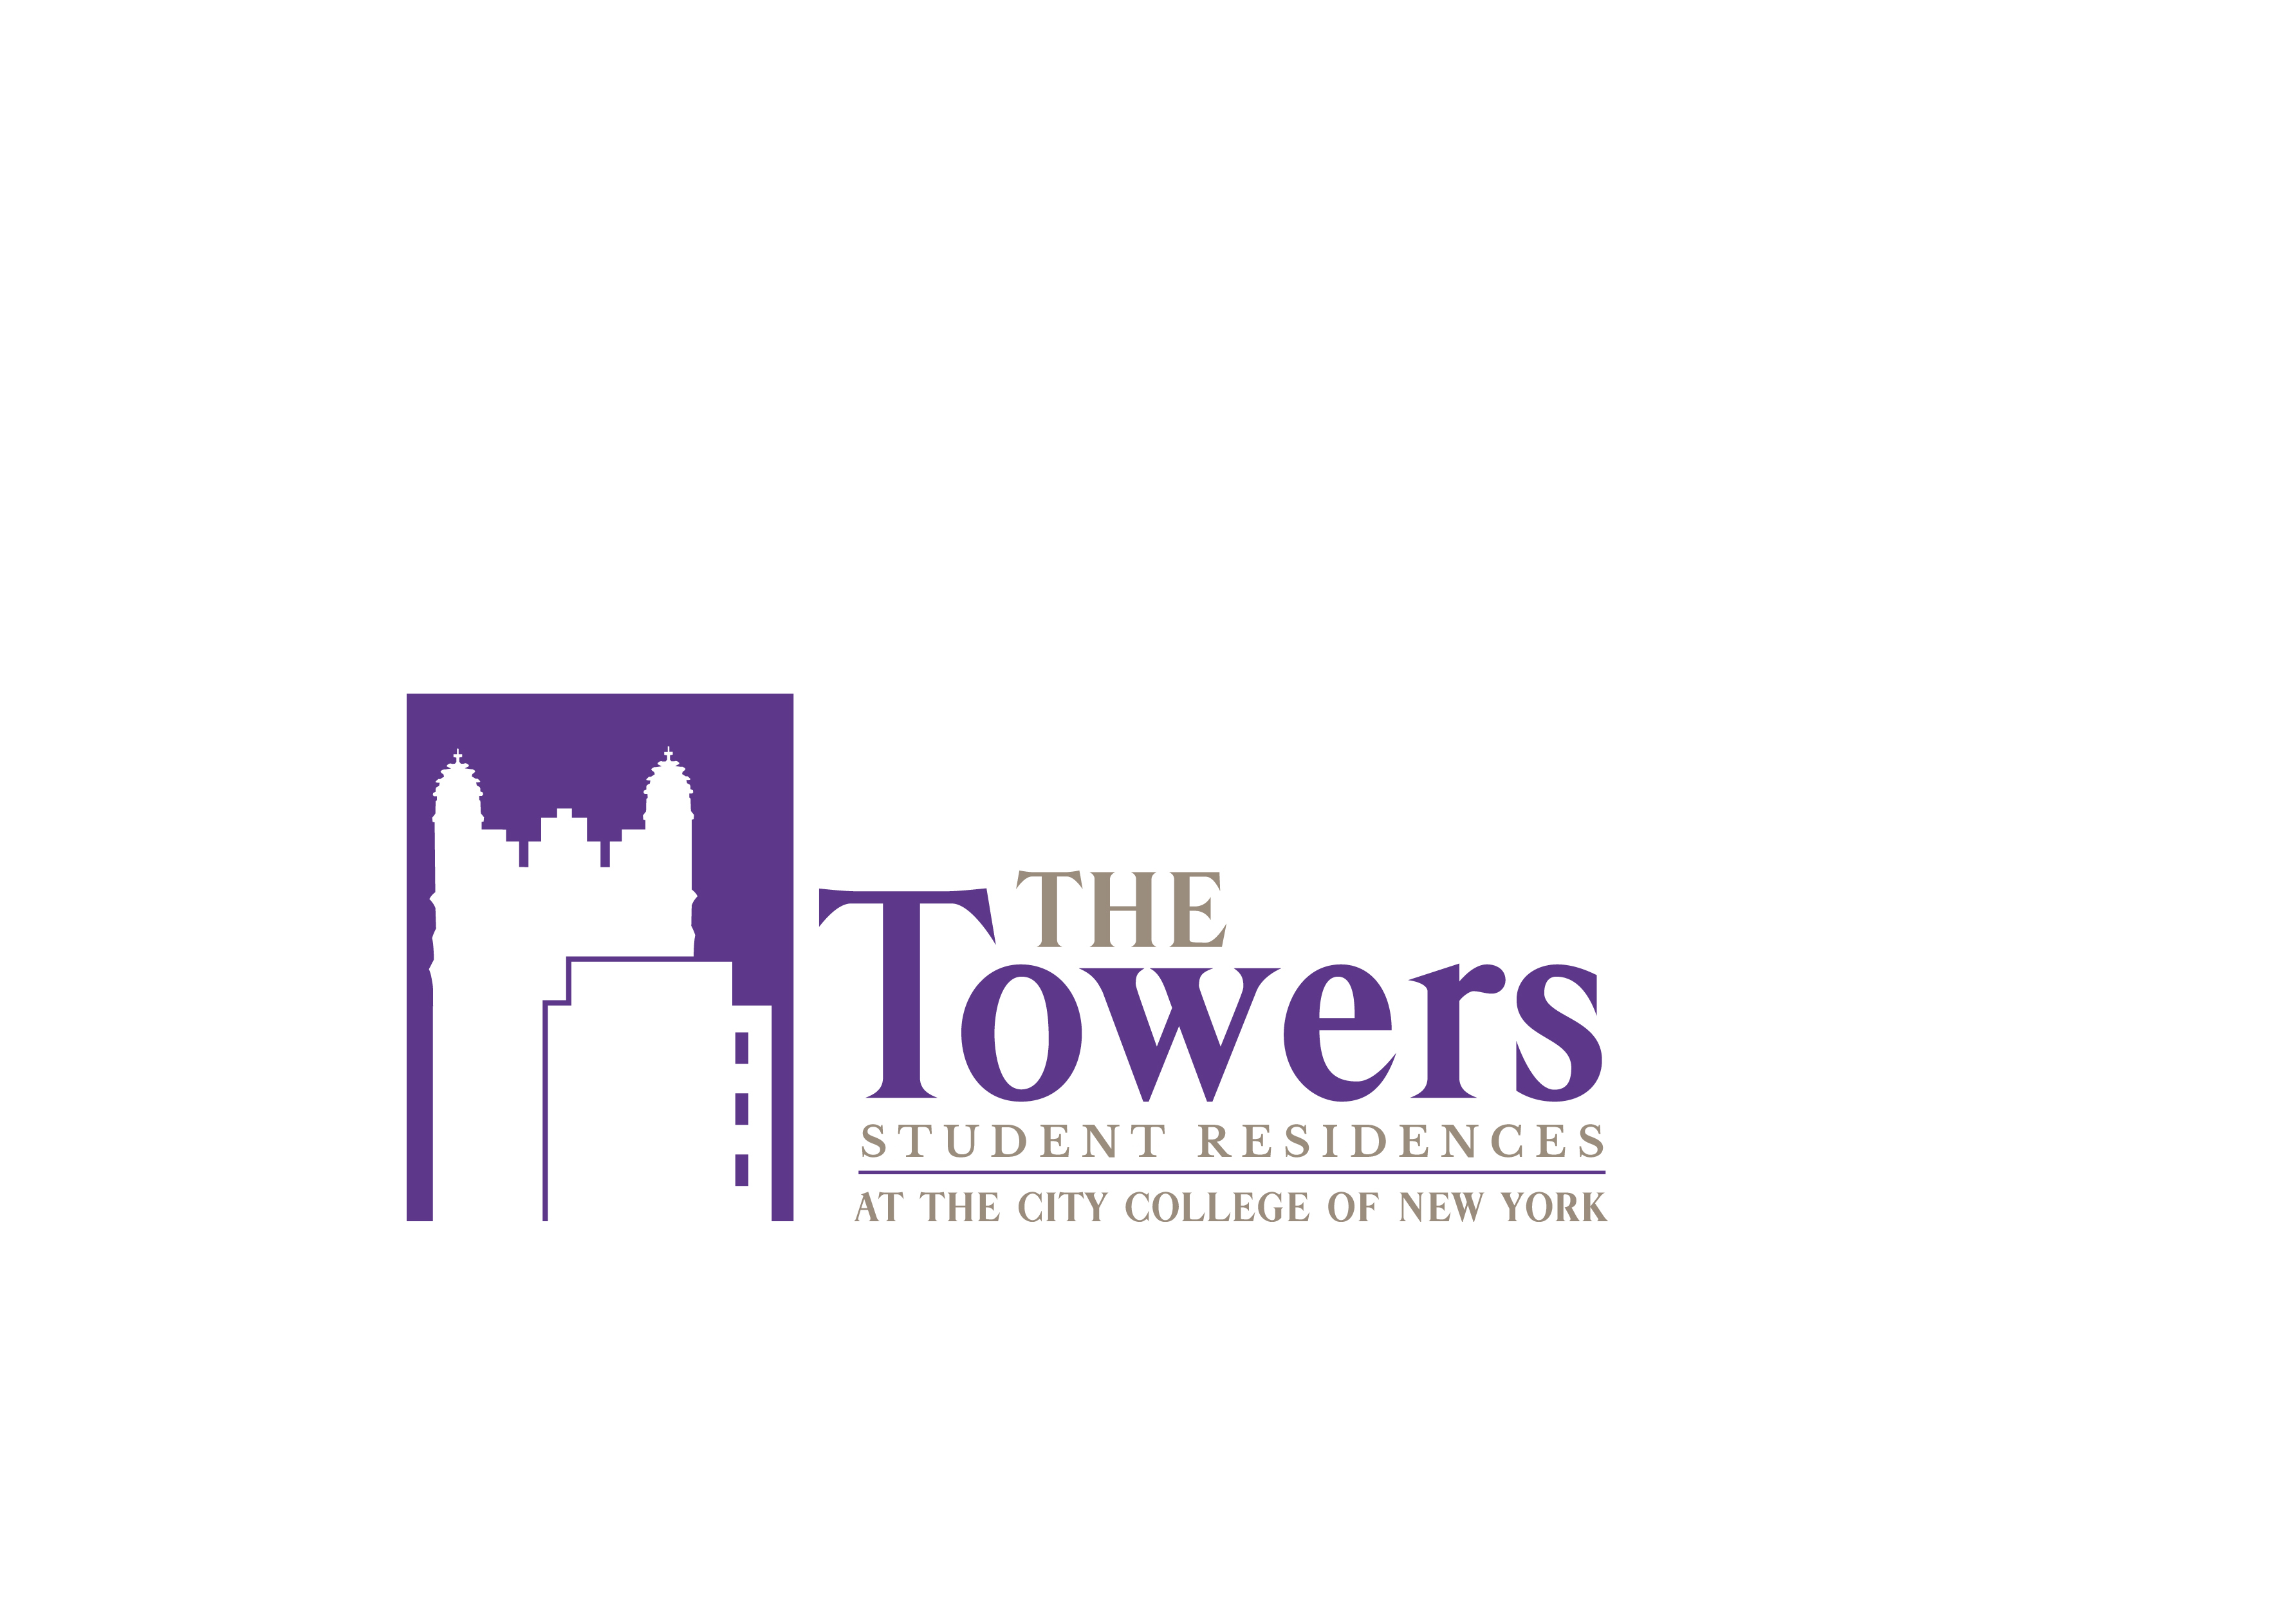 The Towers at CCNY